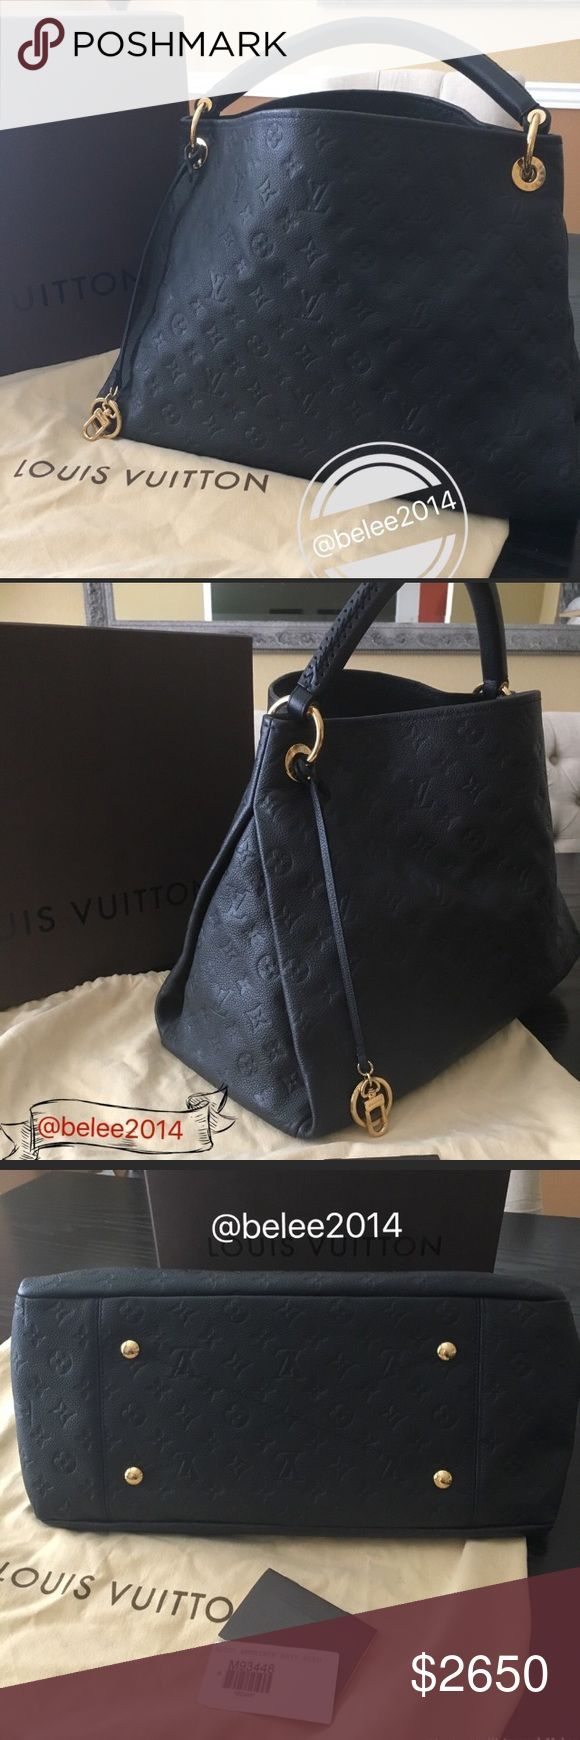 Louis Vuitton Artsy Empreinte mm Authentic. Louis Vuitton Artsy Empreinte mm in dark navy blue. Very good condition. Clean inside and out. Minor scuffs on corners. Comes with original Louis Vuitton box and Dust bag.      ****** Bundle discount does not apply  ****** NO TRADE 🔥 Louis Vuitton Bags Totes